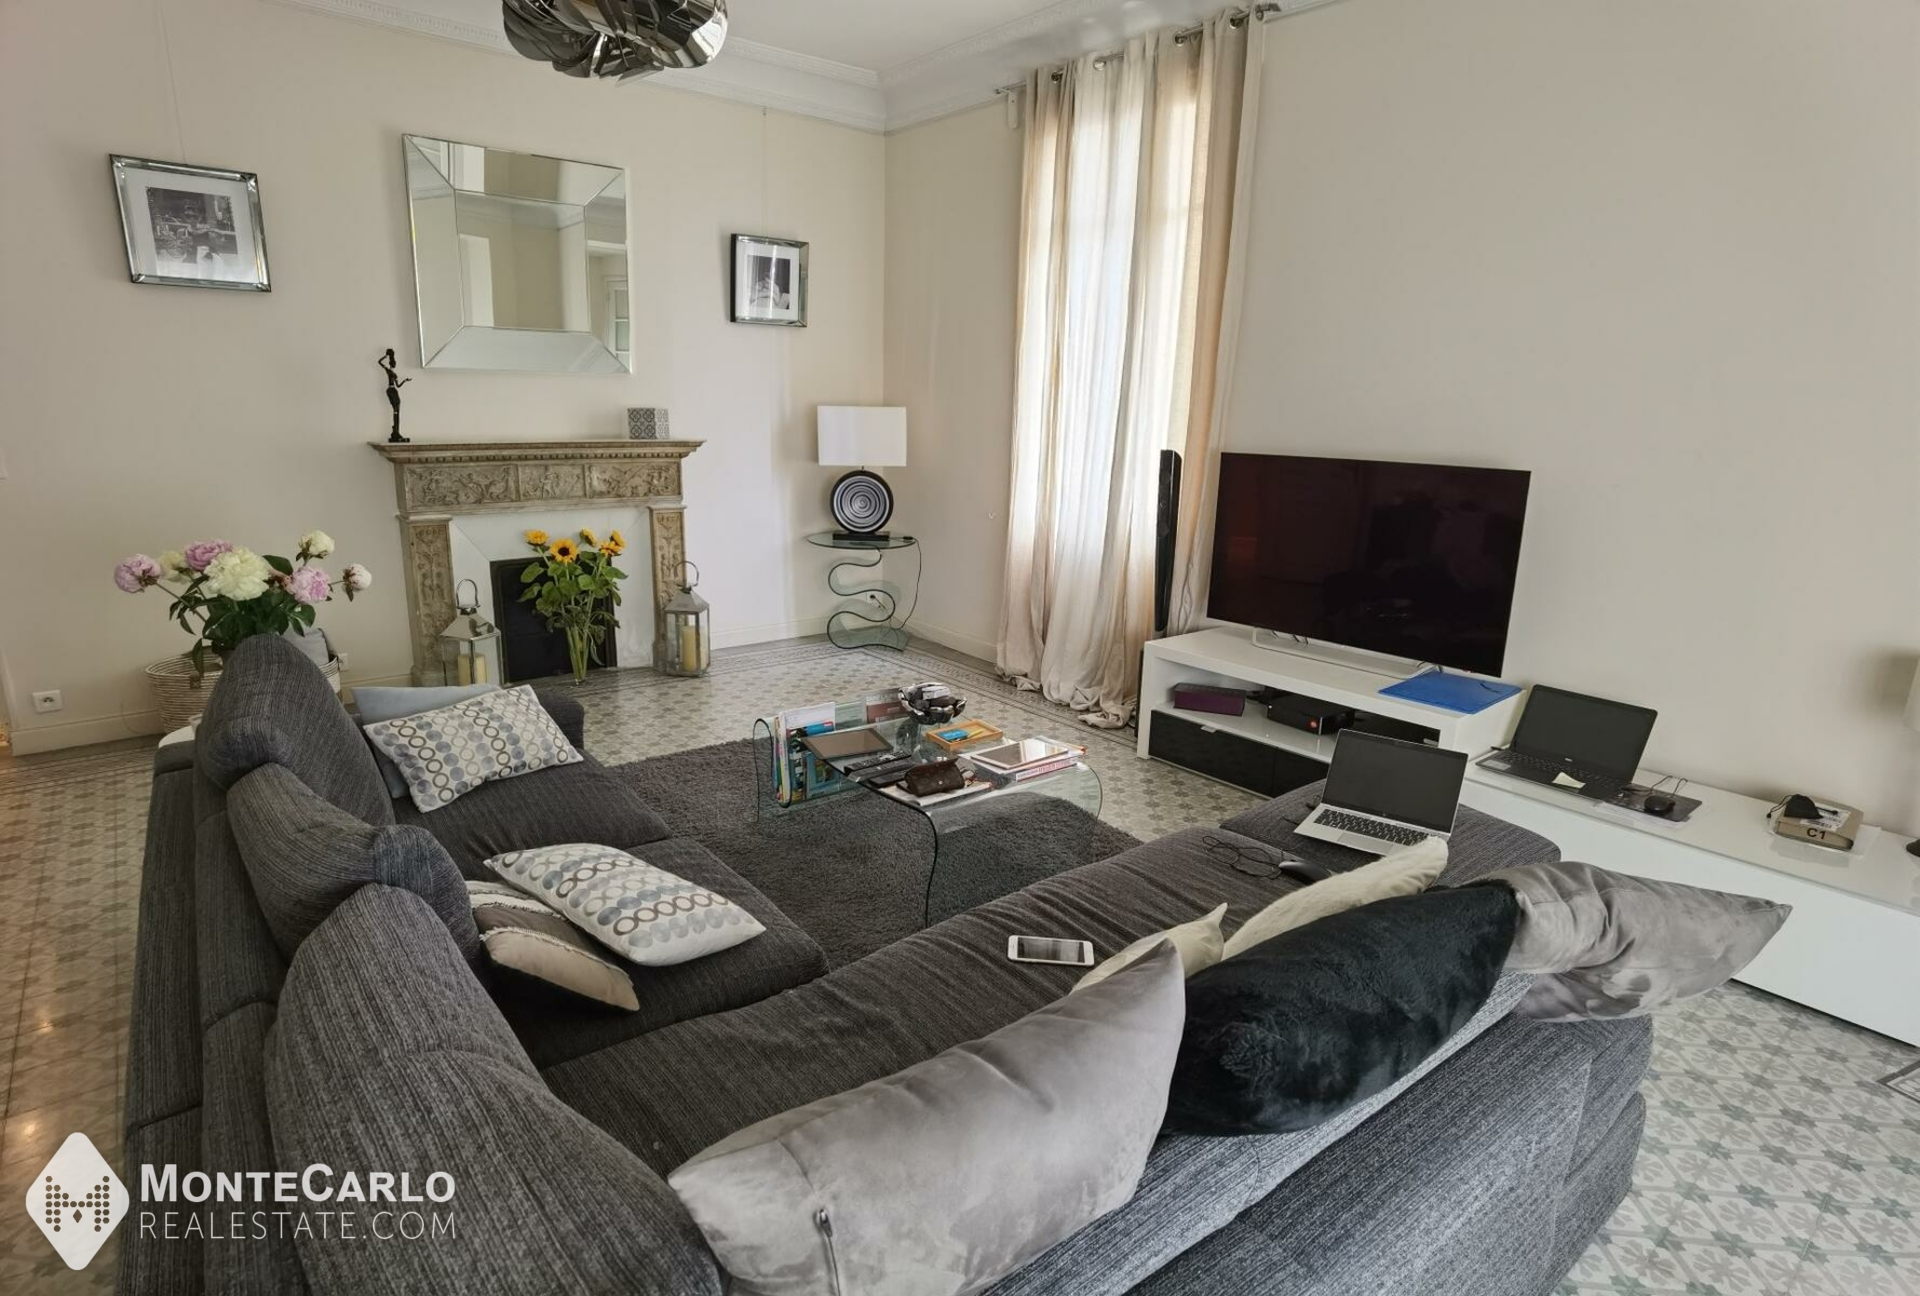 Location Franzido Palace - Appartement / 5 pièces : 8 500 € | Monte-Carlo Real Estate [2344]